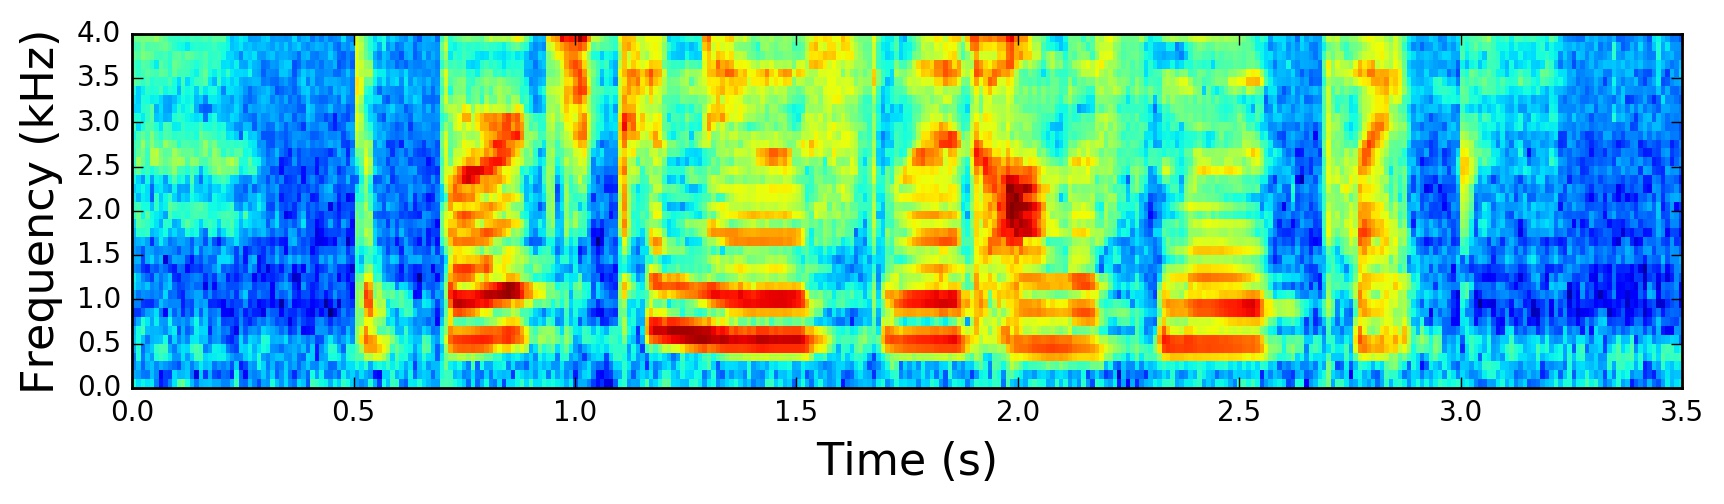 Spectrogram of the Signal